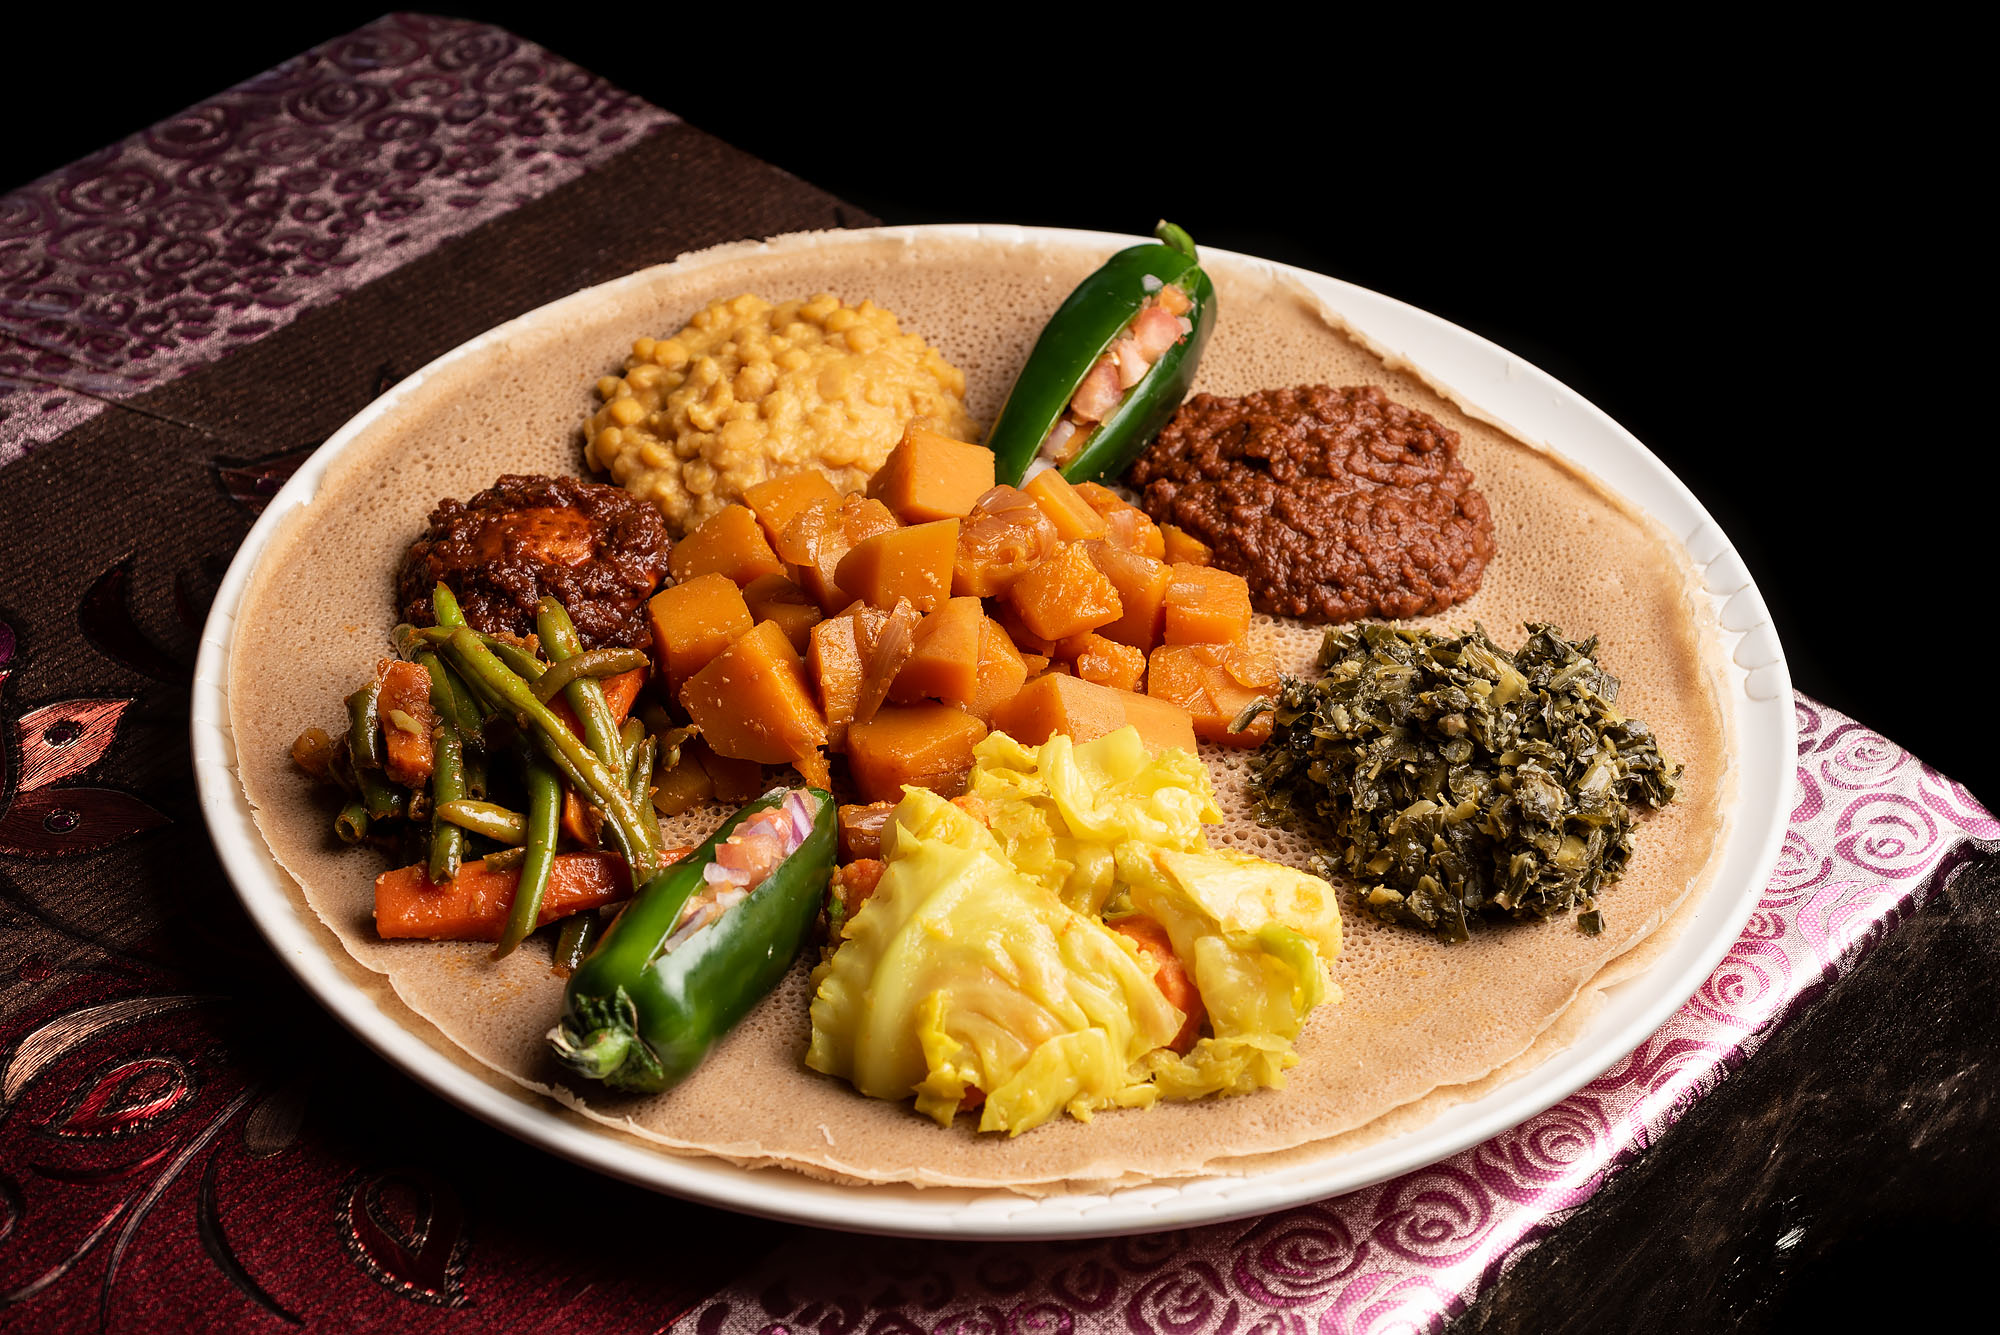 A platter of colorful Ethiopian stews on injera bread.